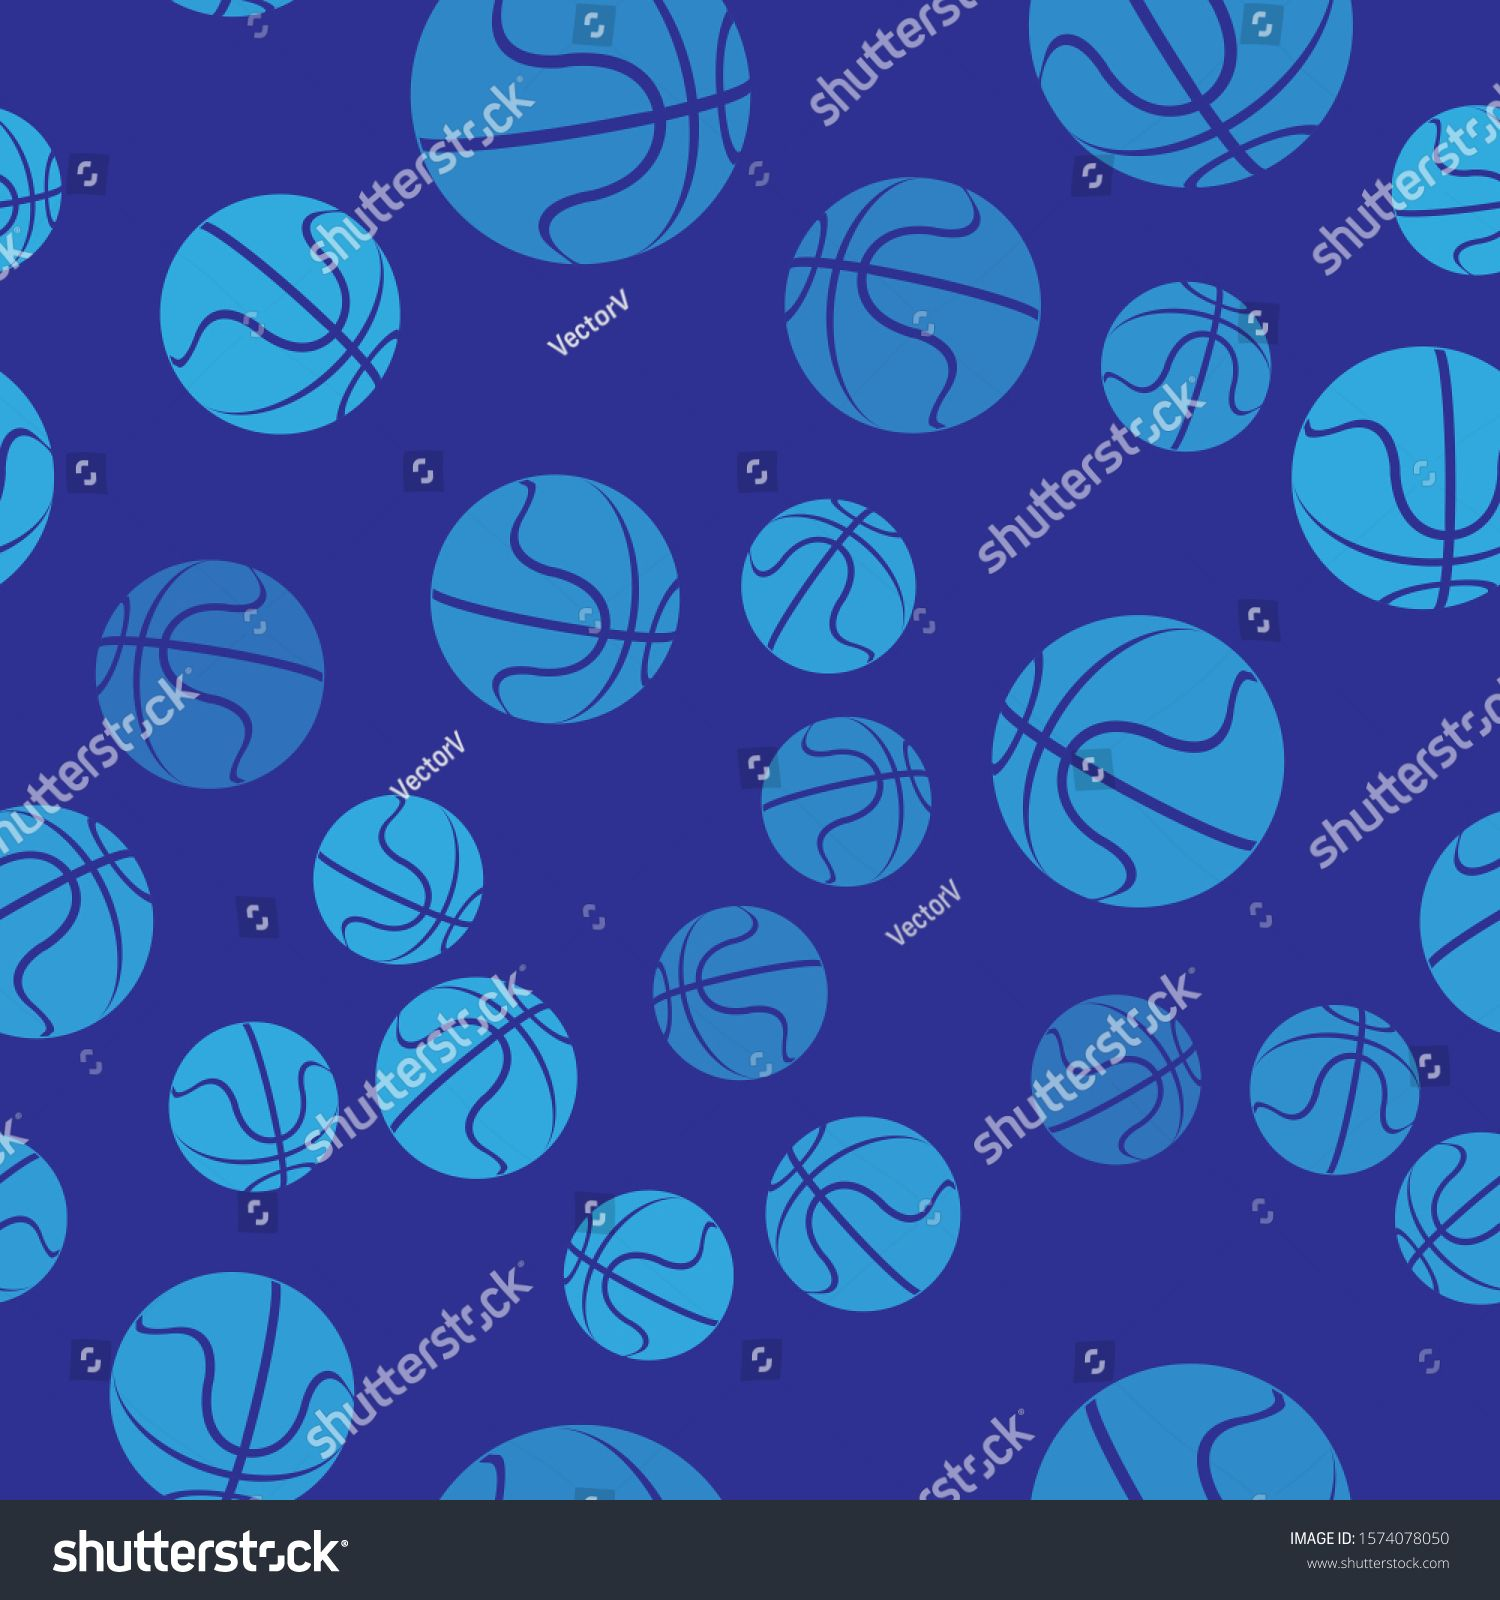 Blue Basketball ball icon isolated seamless pattern on